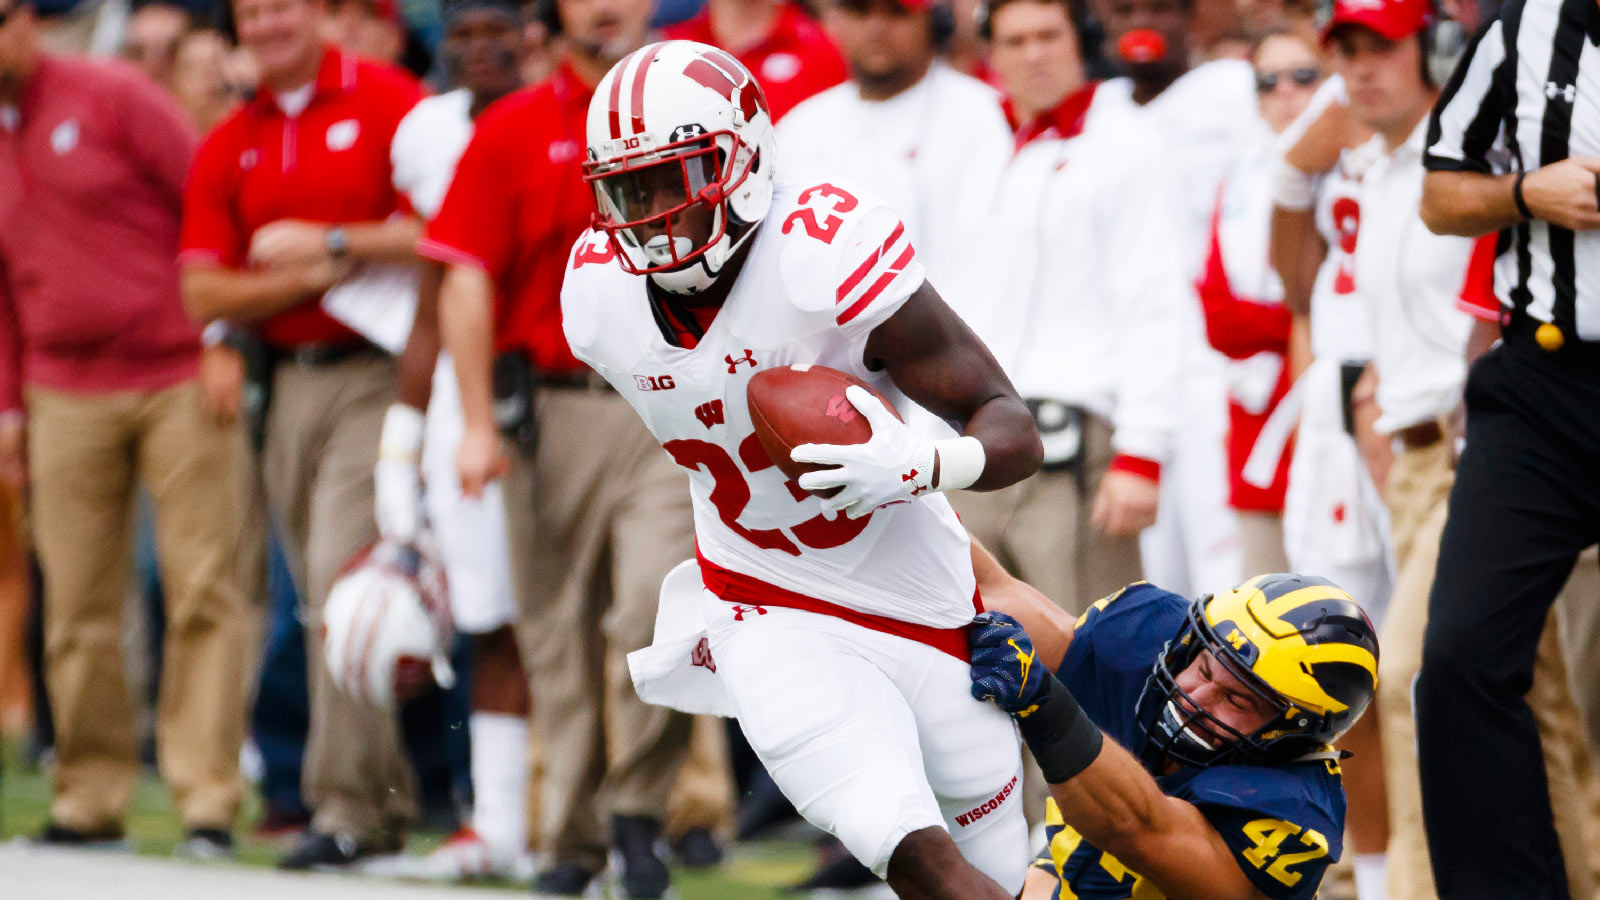 Badgers look to get running game rolling against Ohio State